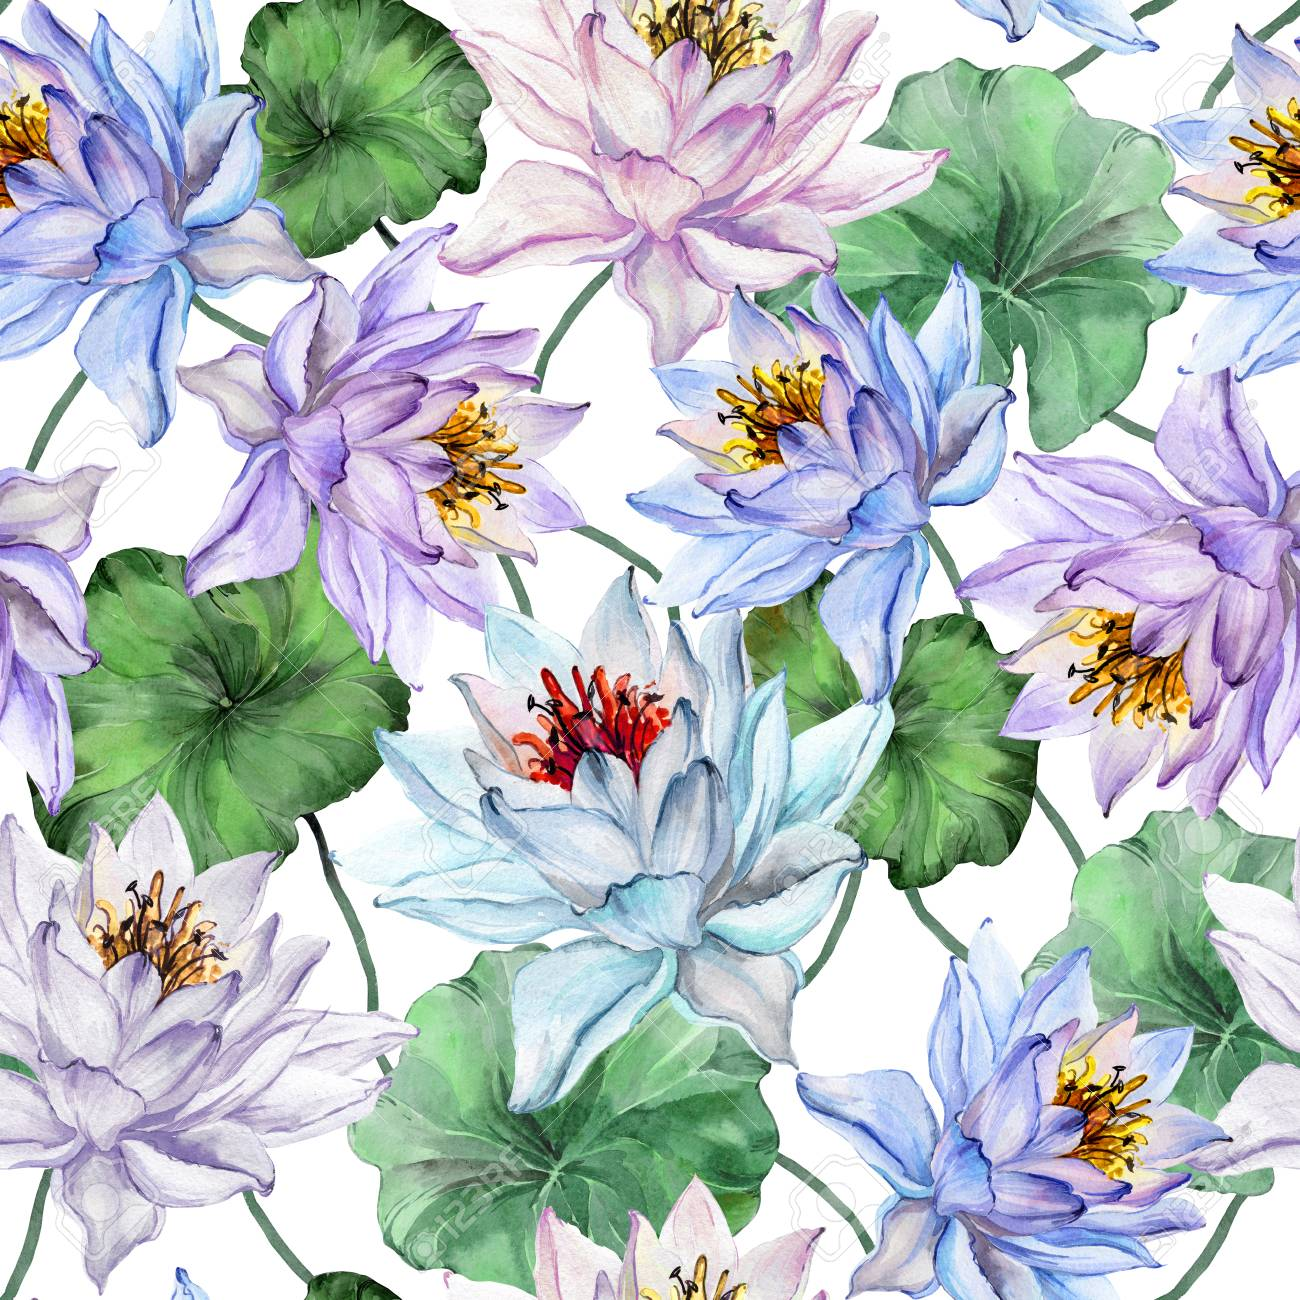 Design Of Textile Or Wallpaper Beautiful Floral Seamless Pattern Large Blue And Purple Lotus Flowers With Leaves On White Background